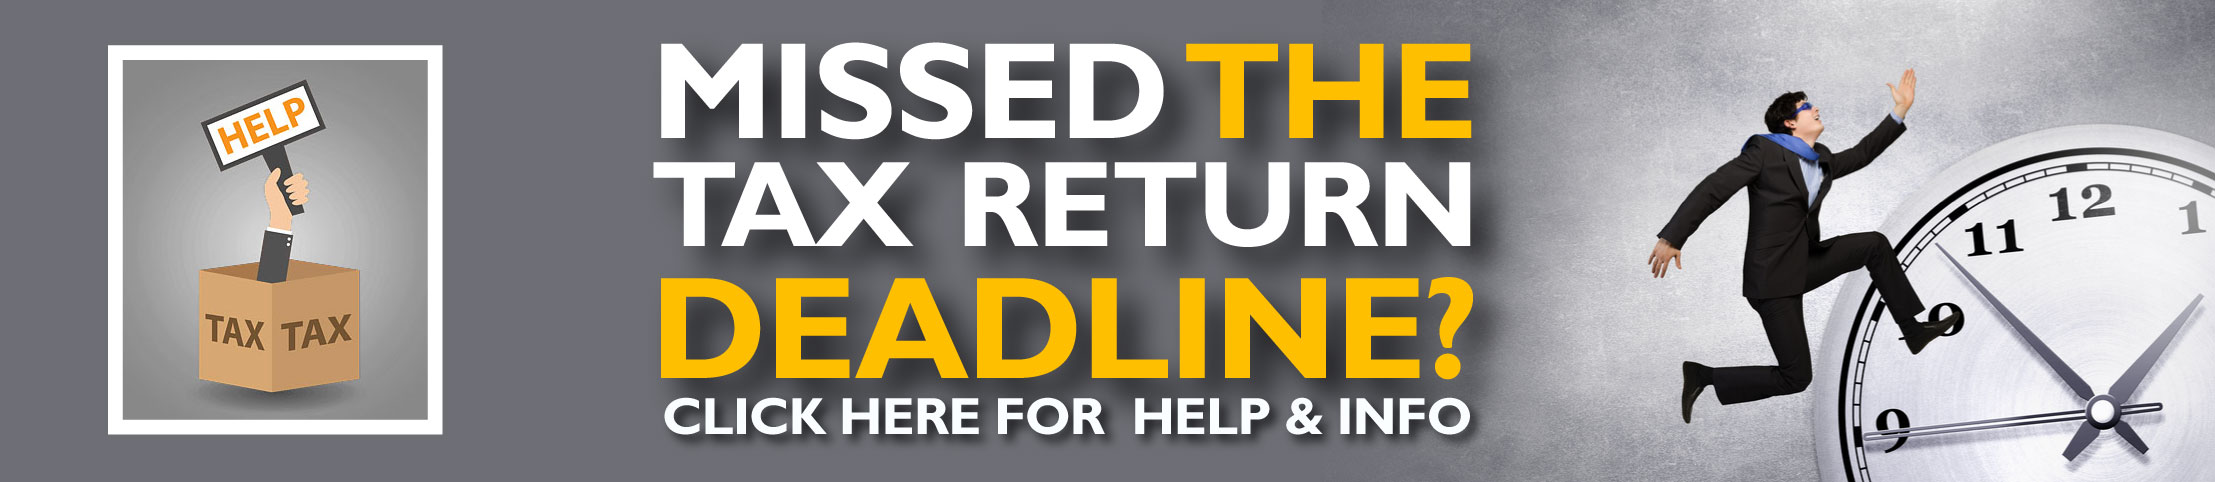 Missed the Self-Assessment tax return deadline? Now what?